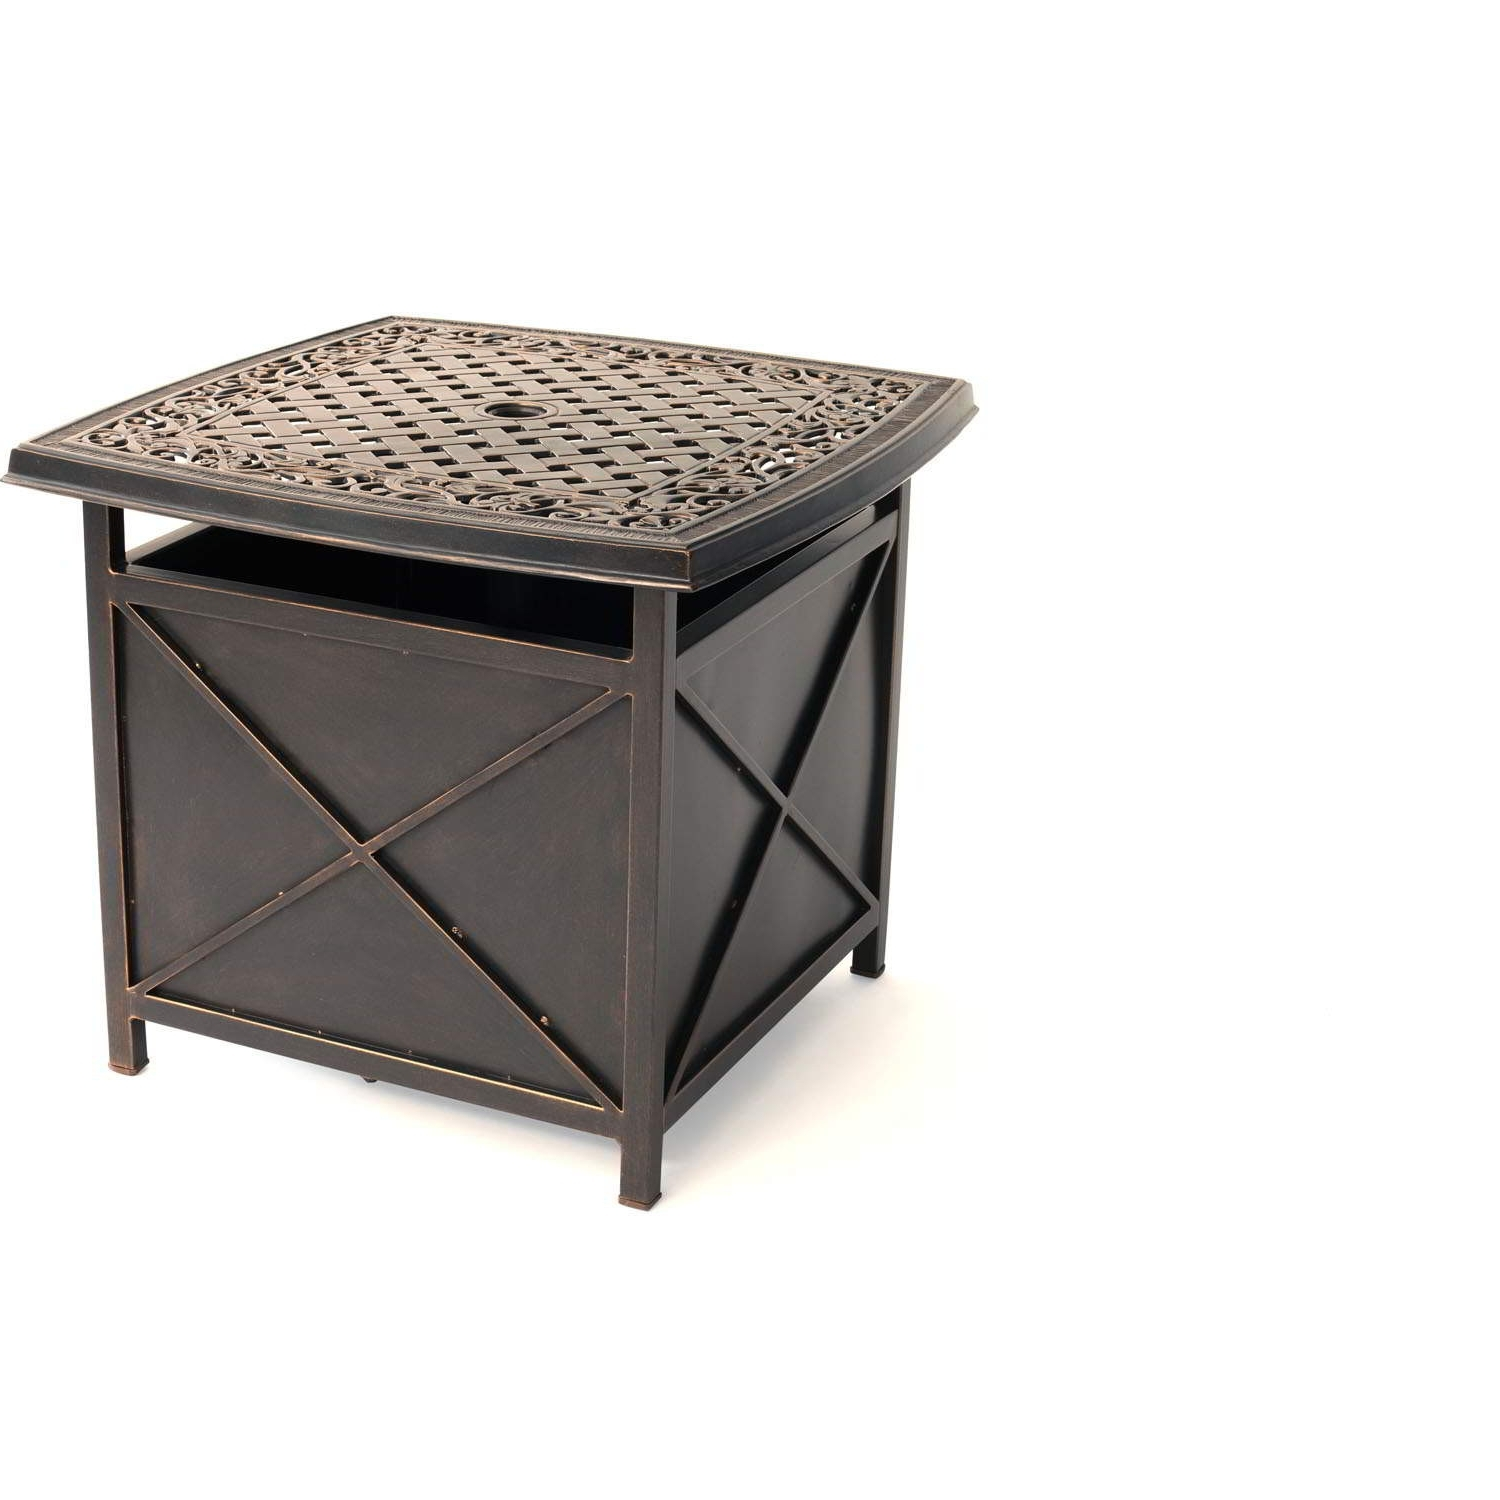 Preferred 50 Outdoor Umbrella Side Table Pa9z – Mcnamaralaw Within Patio Umbrella Side Tables (View 17 of 20)